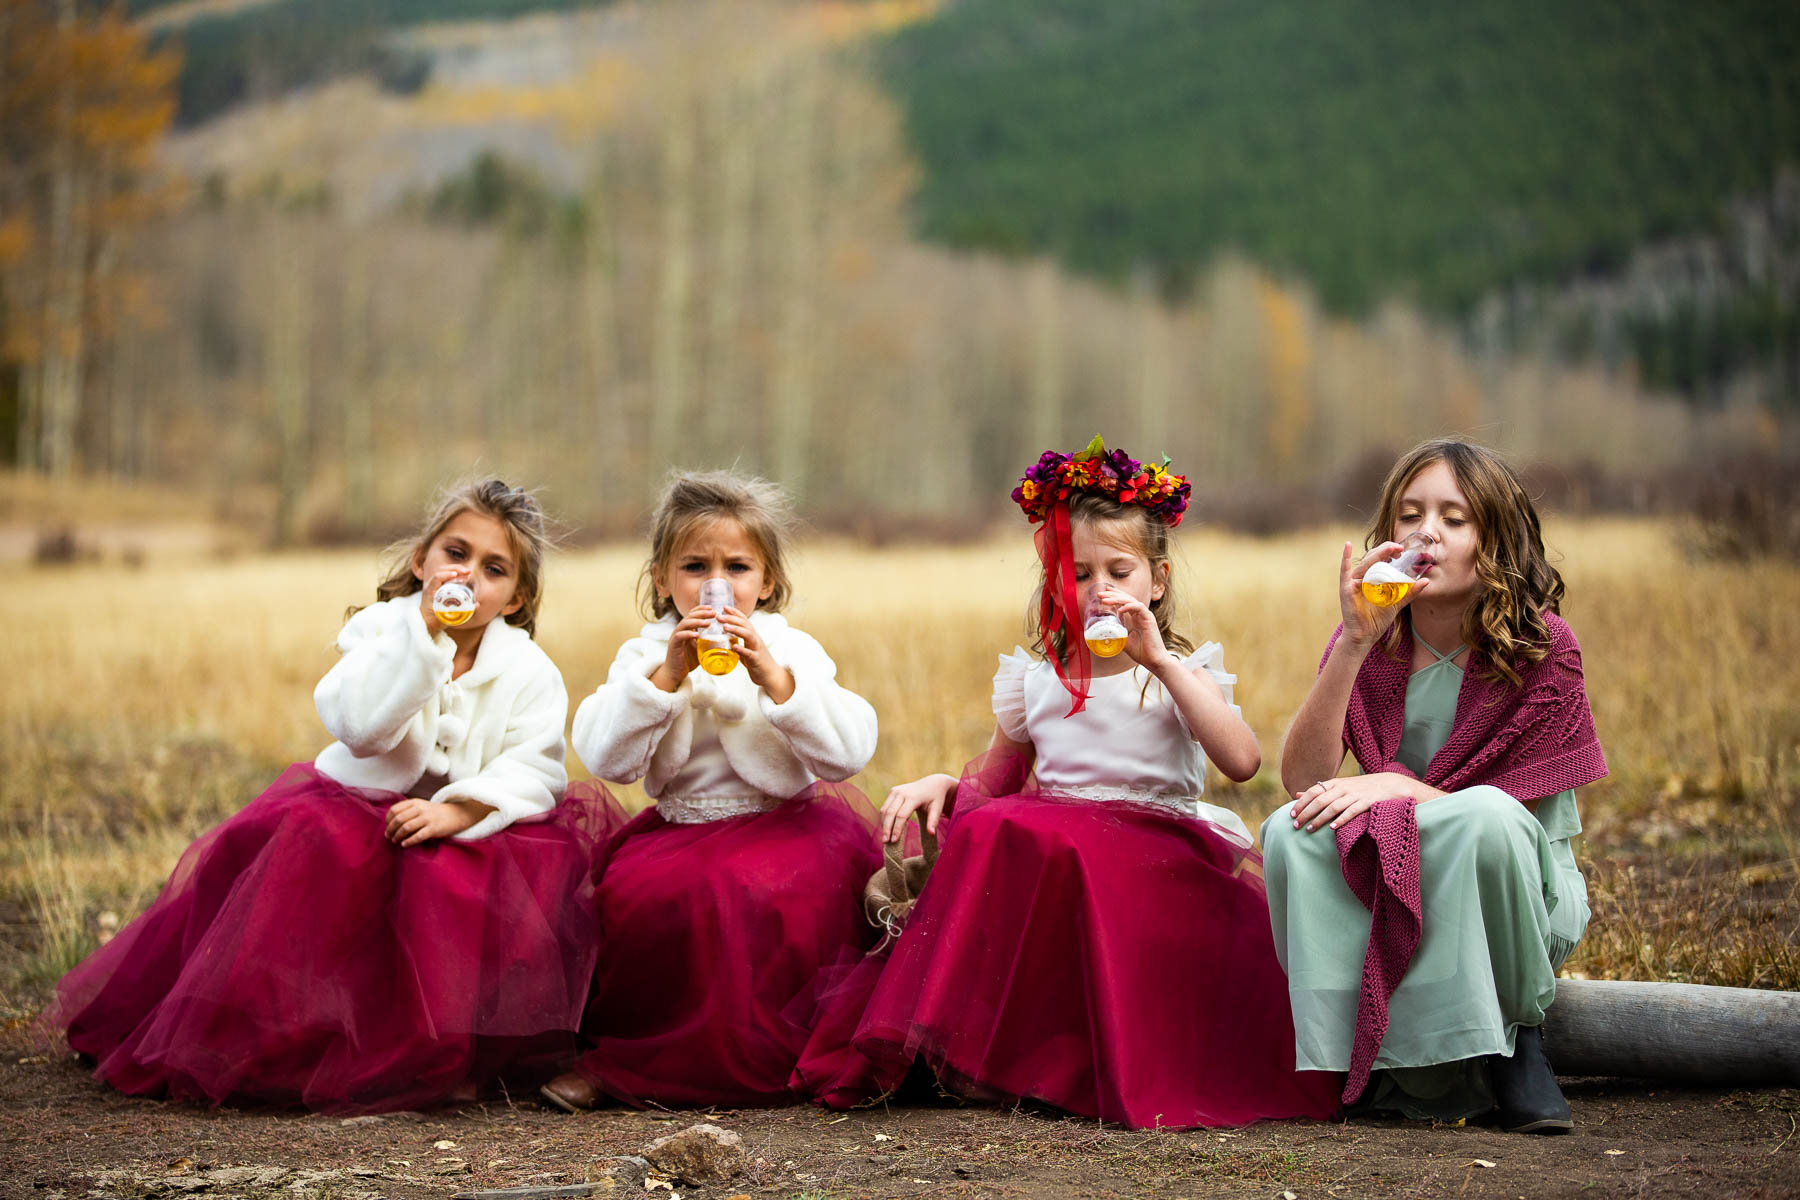 Photos from a Kenosha Pass Adventure Wedding | The 4 flower girls gather together on a log to enjoy apple juice